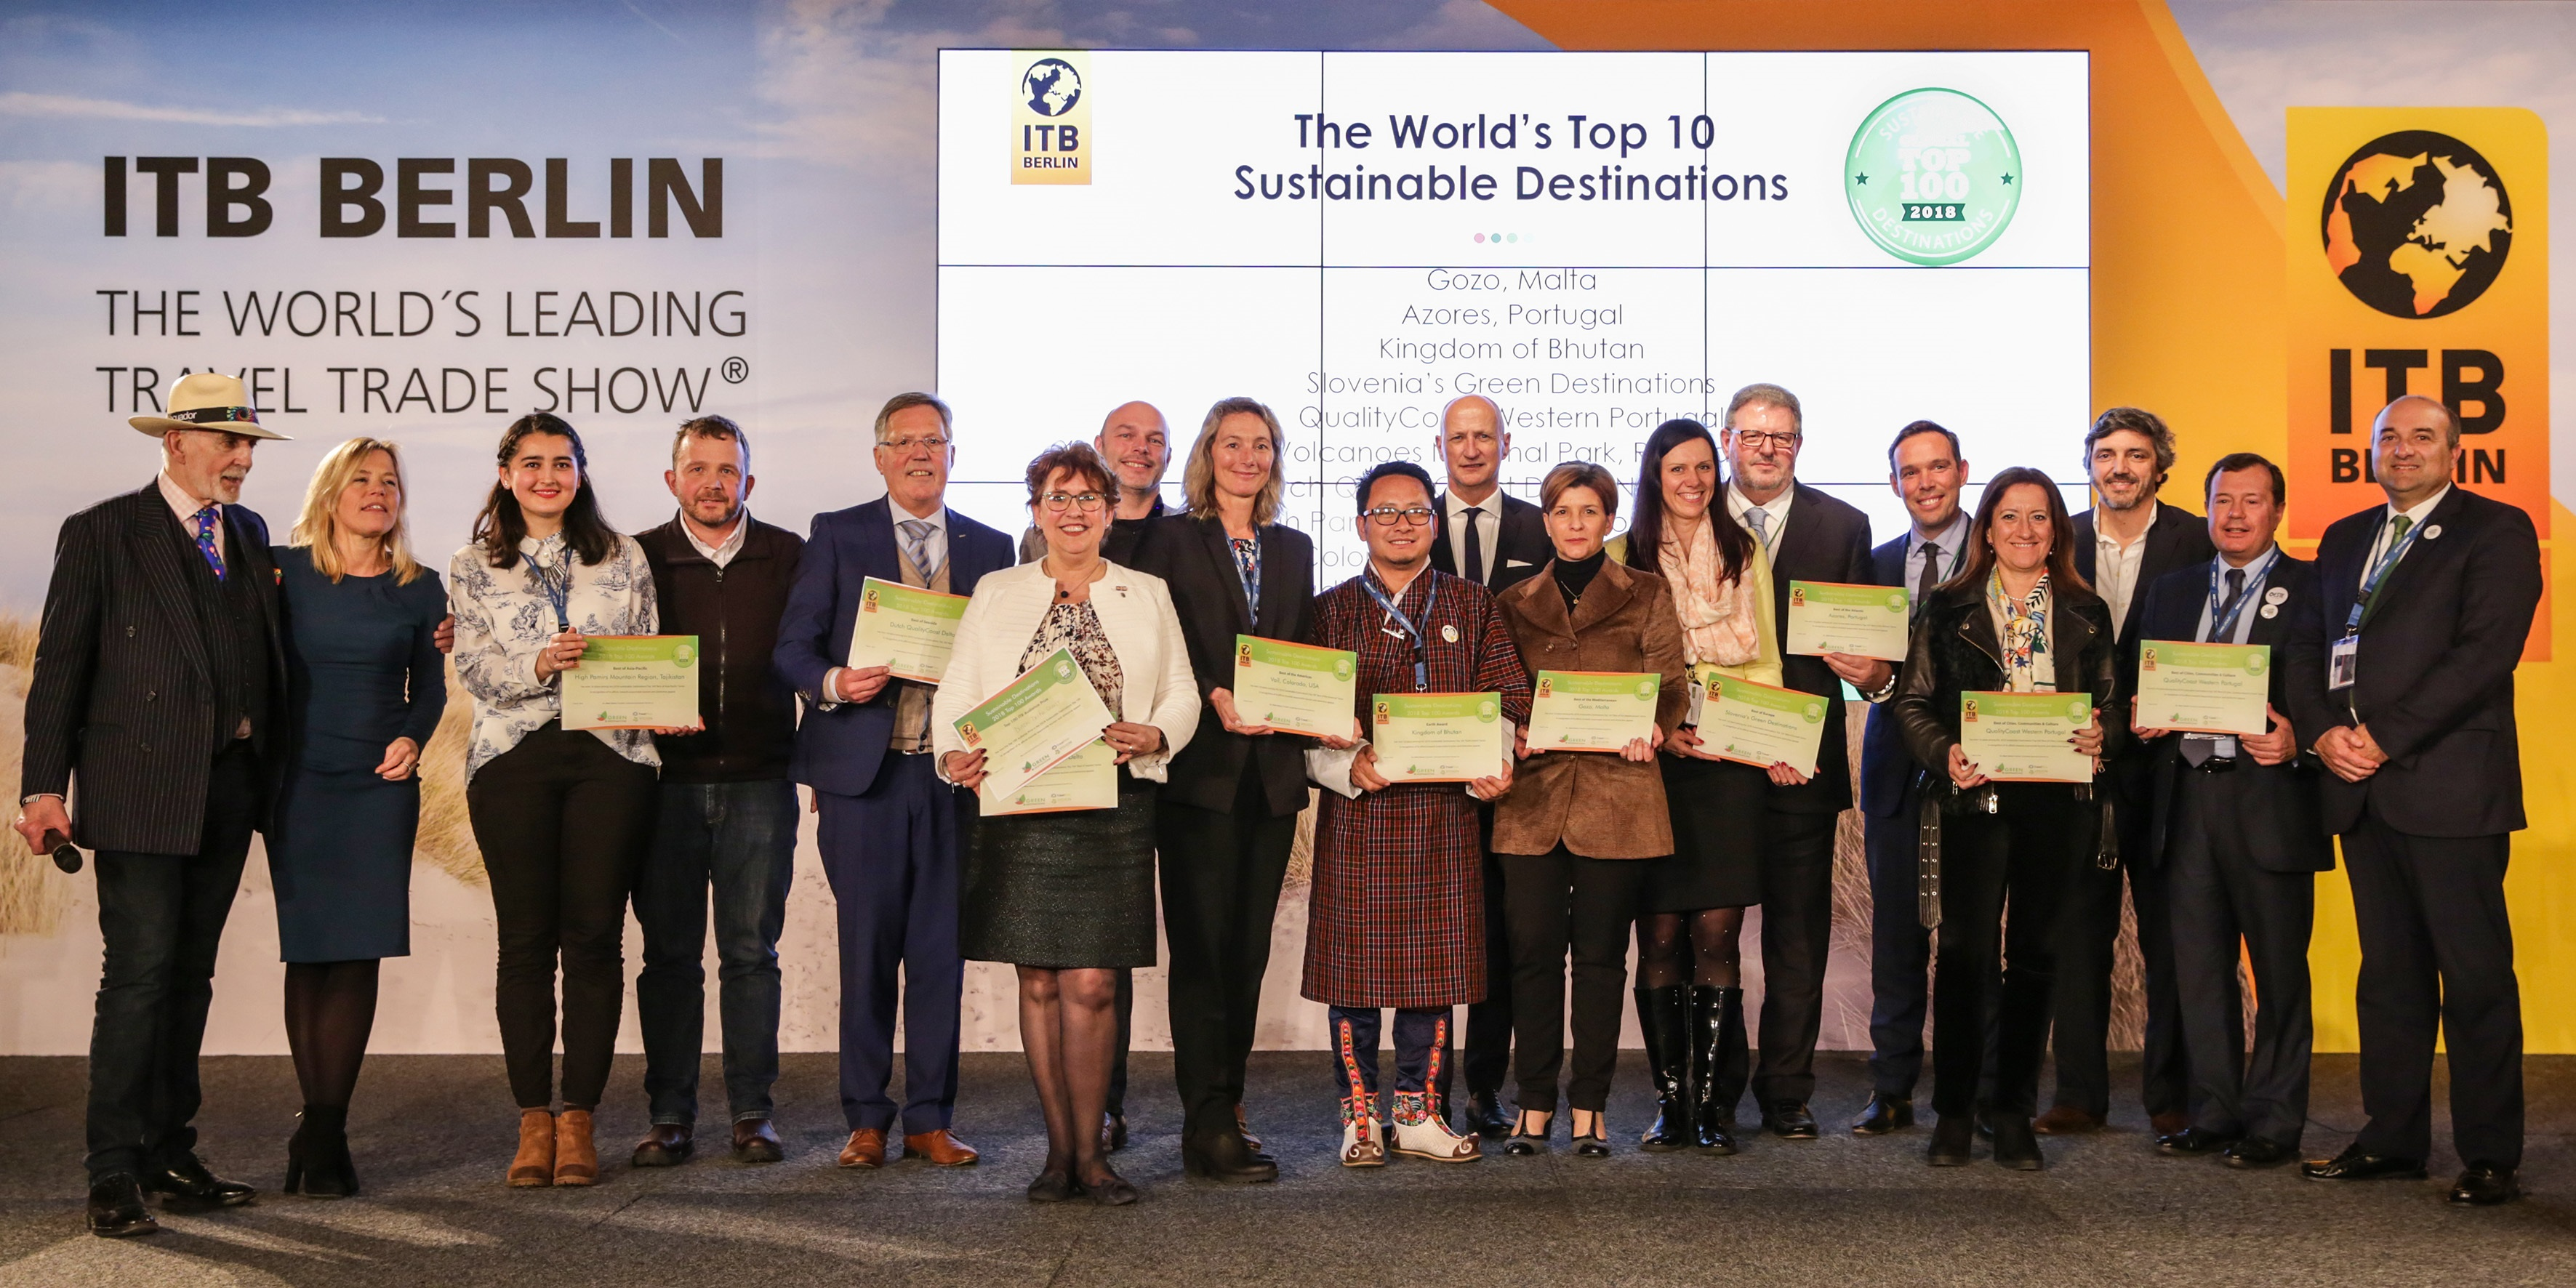 ITB Berlin 2018 - Sustainable Destinations Top 100 Award - The World's Top 10 Sustainable Destinations